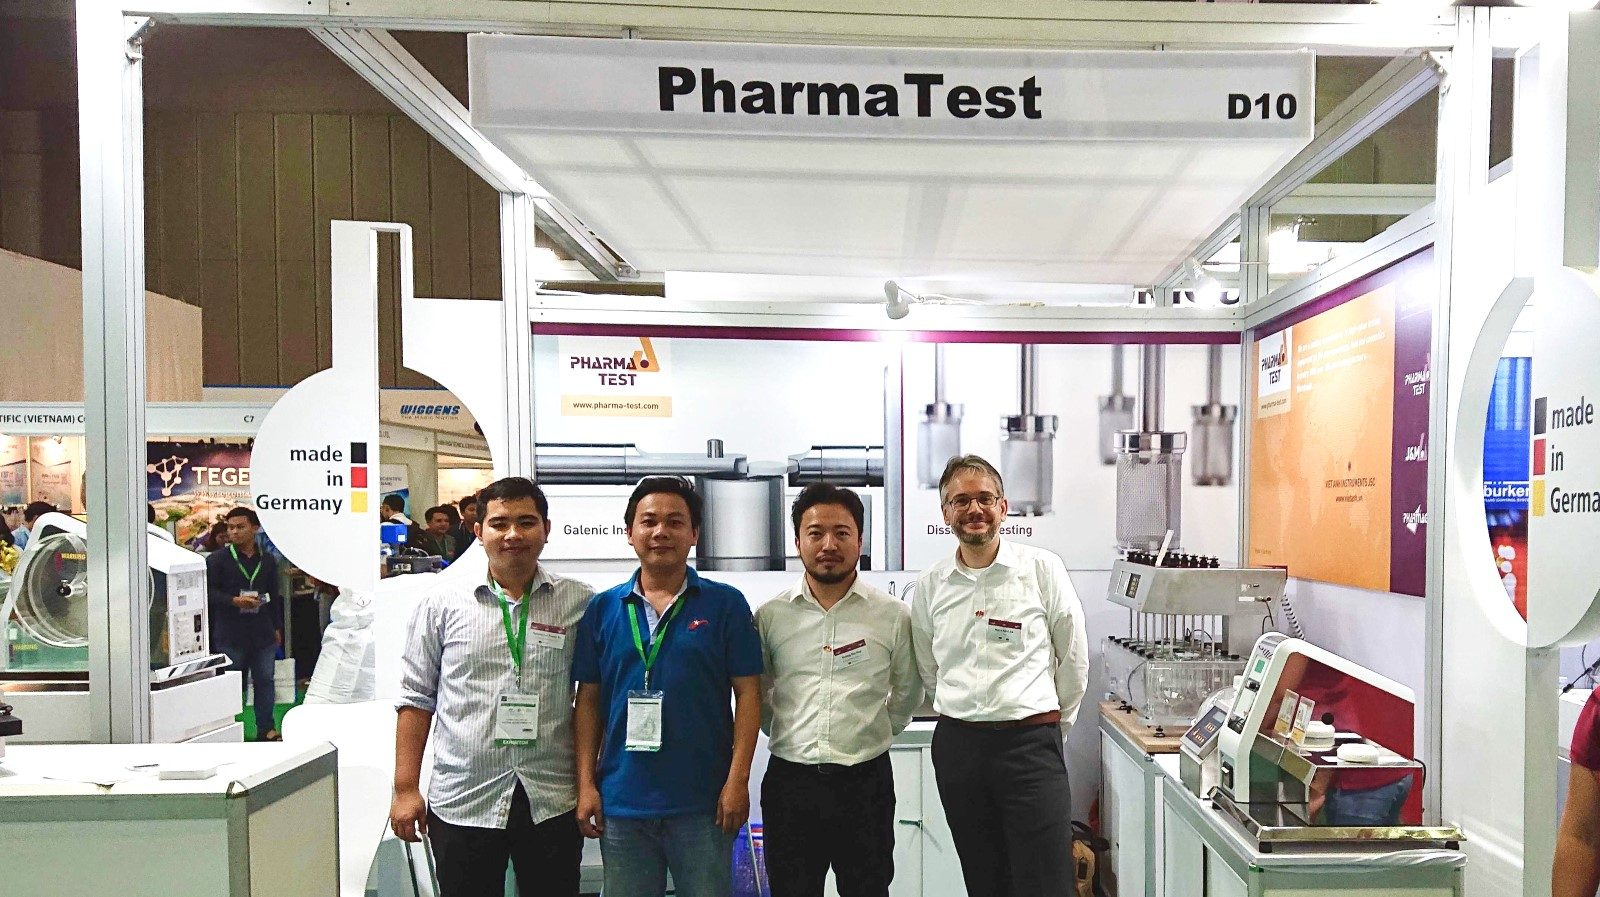 Impressions from analytica Vietnam 2019 - Pharma Test